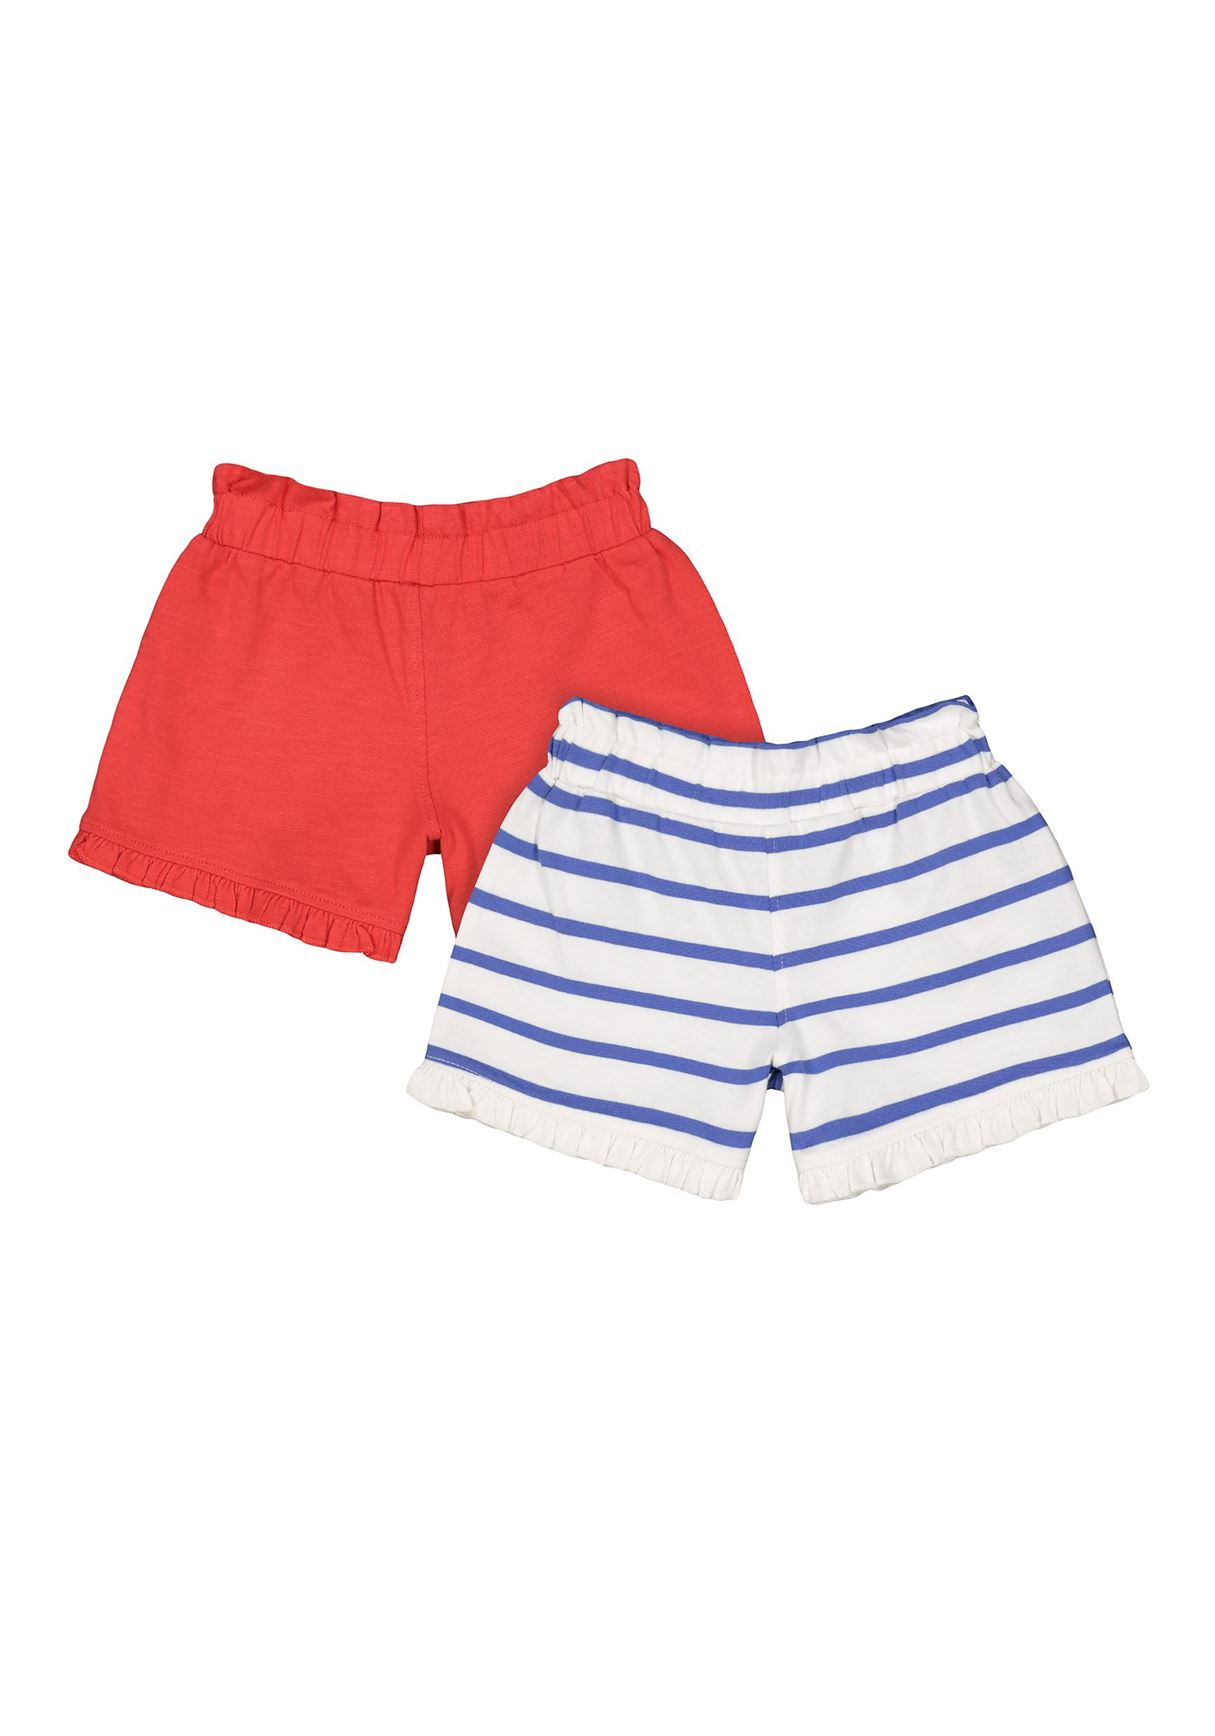 Mothercare Girls Assorted Striped Pack of 2 Shorts